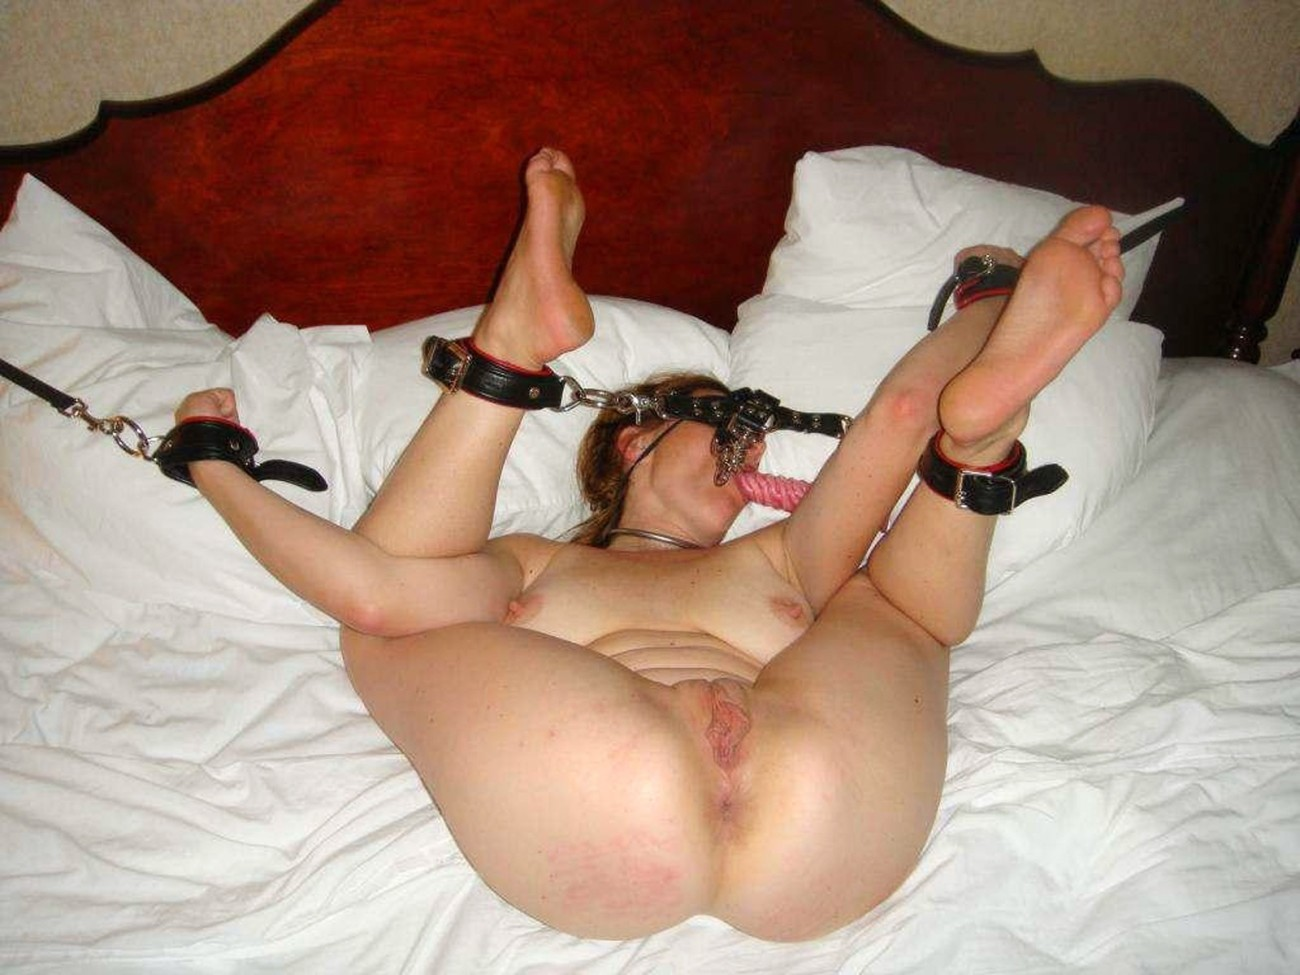 Big Tit Amateur Teen Homemade And Anal Toys Fetish Bondage First Time Rough Outdoor